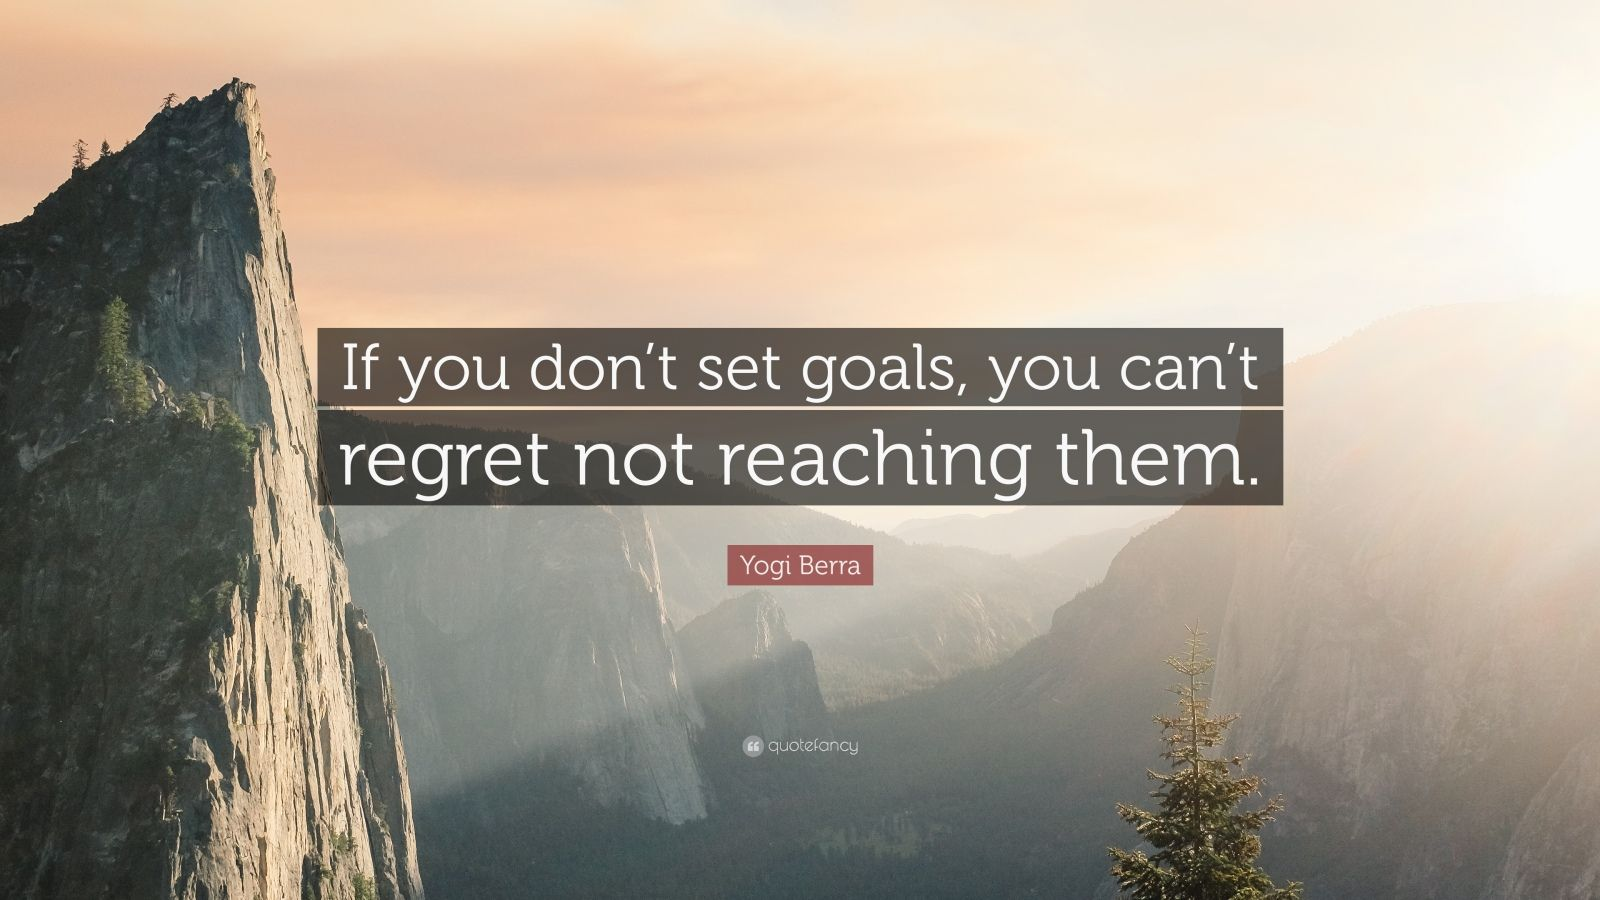 """Yogi Berra Quote: """"If you don't set goals, you can't regret not reaching them."""""""